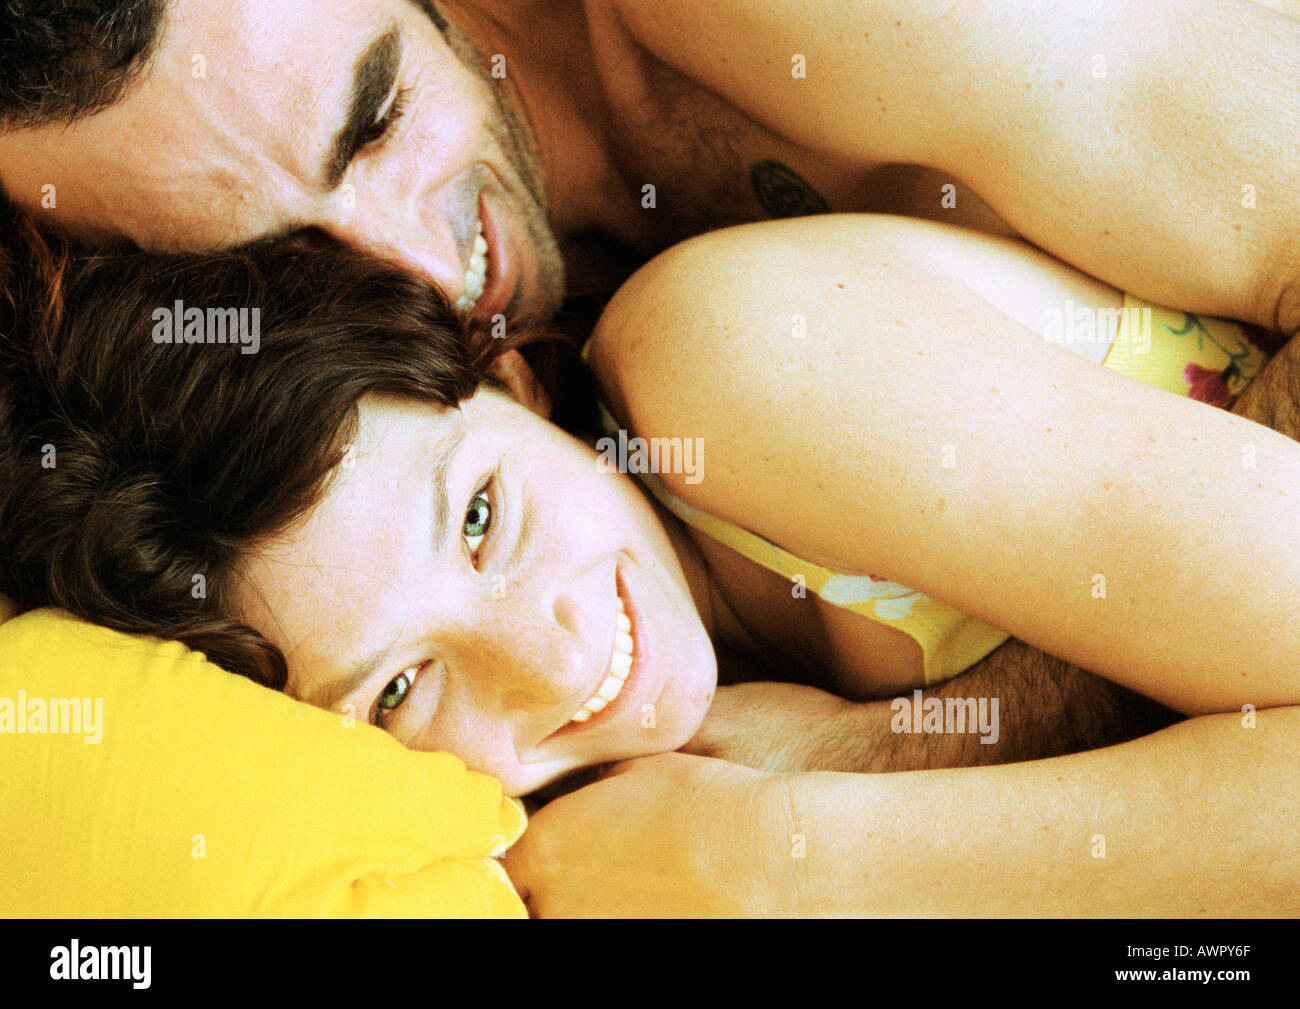 Couple in bed, man lying on woman's back, close-up. Banque D'Images